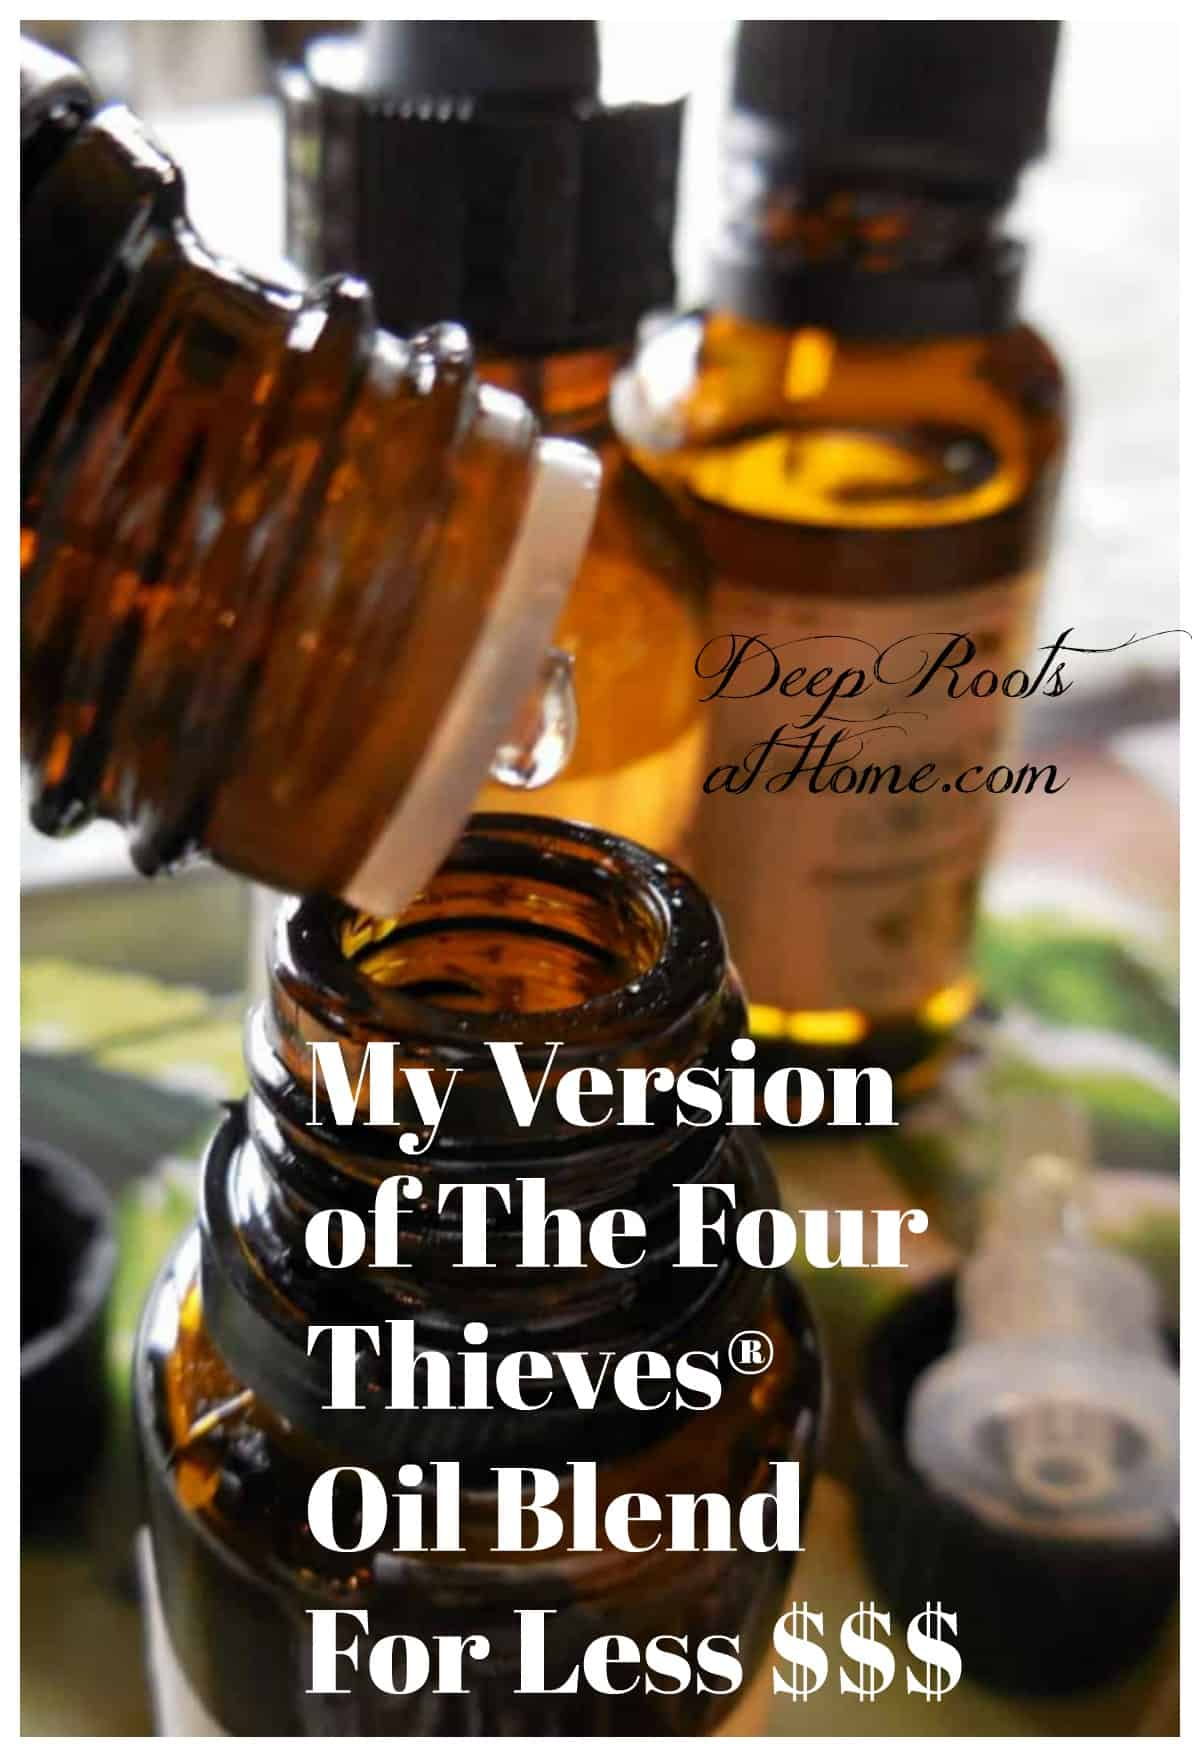 My Version of The Four Thieves® Oil Blend For Less $$$. Making your own essential oil blend by mixing drops